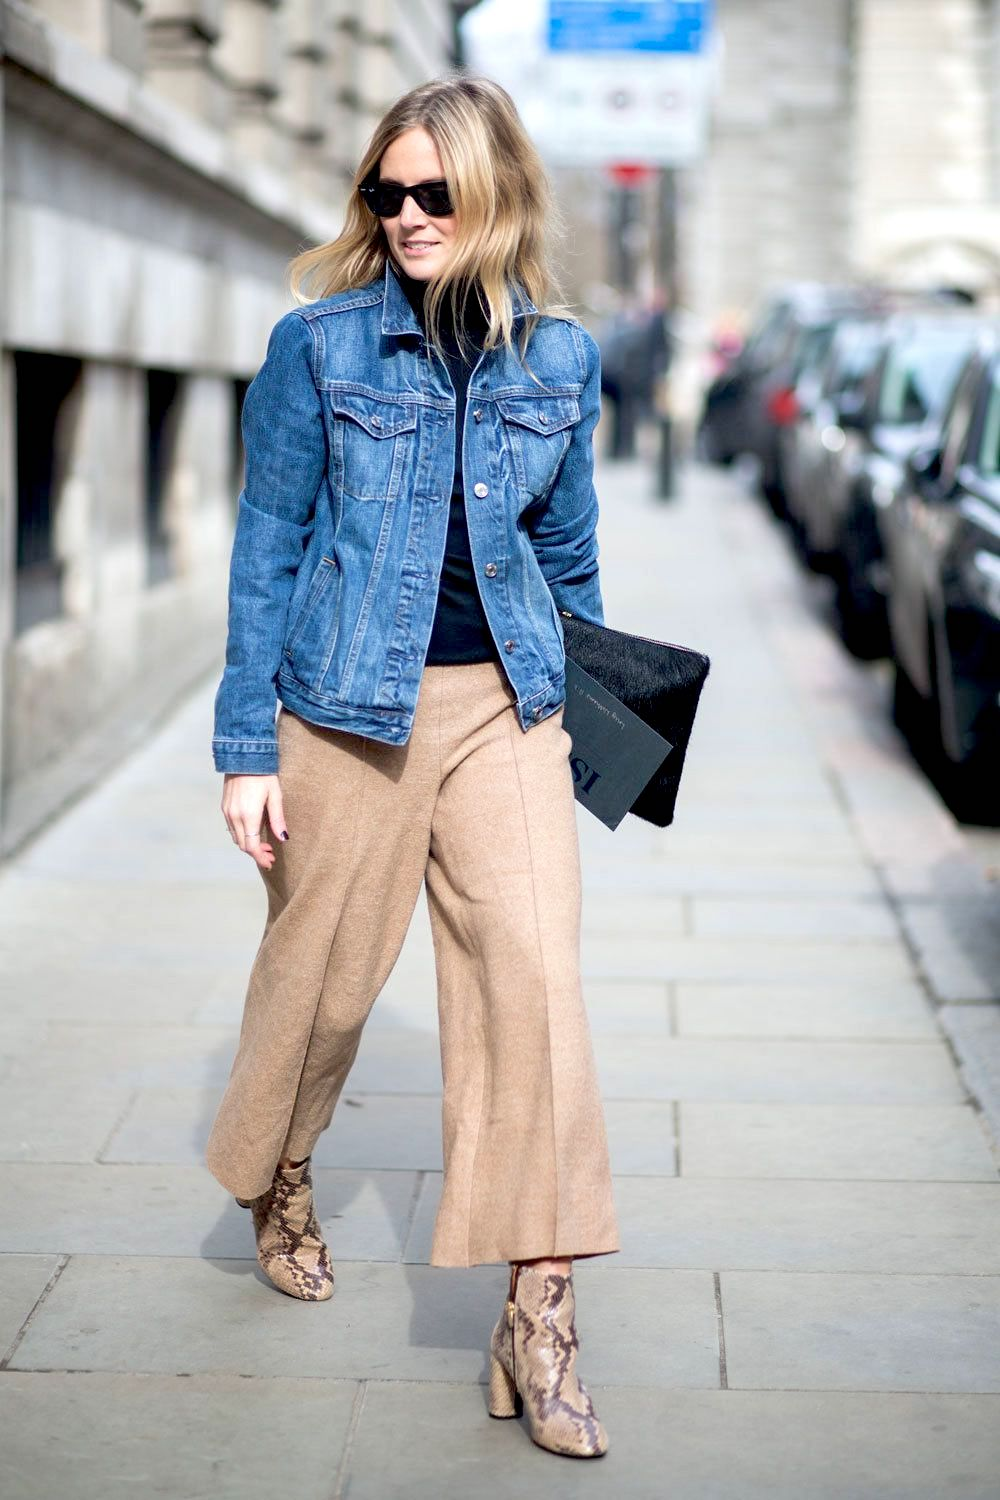 Effortless Denim Jacket Outfit Idea for Spring — Lucy Williams street style look in a black turtleneck top, tan cropped pants, snake-print ankle boots